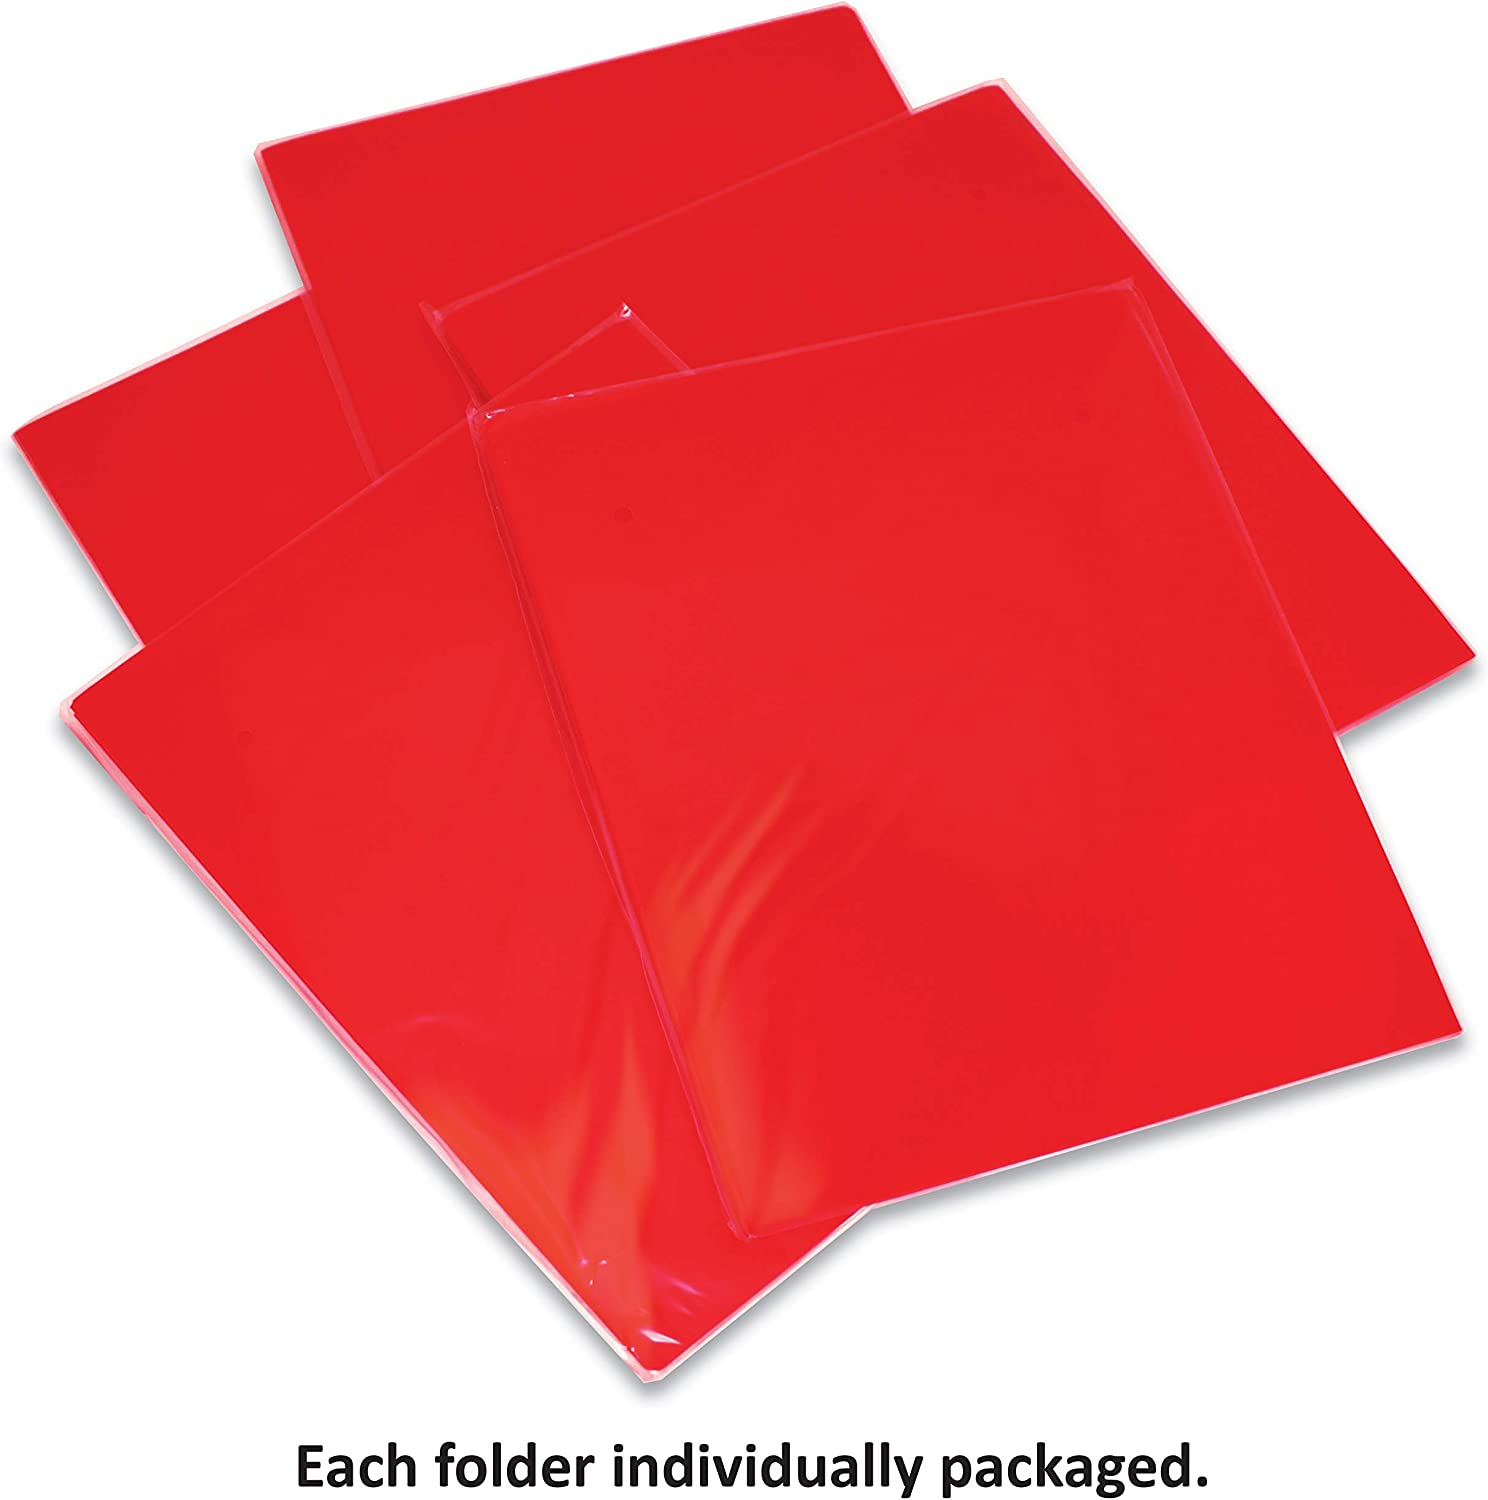 12 Pack High Sheen Reflective Finish Extra Heavyweight Red Plastic 2 Pocket Portfolio Folders Premium Letter Size Folders by Gold Seal 12 Pack Poly Folders Red